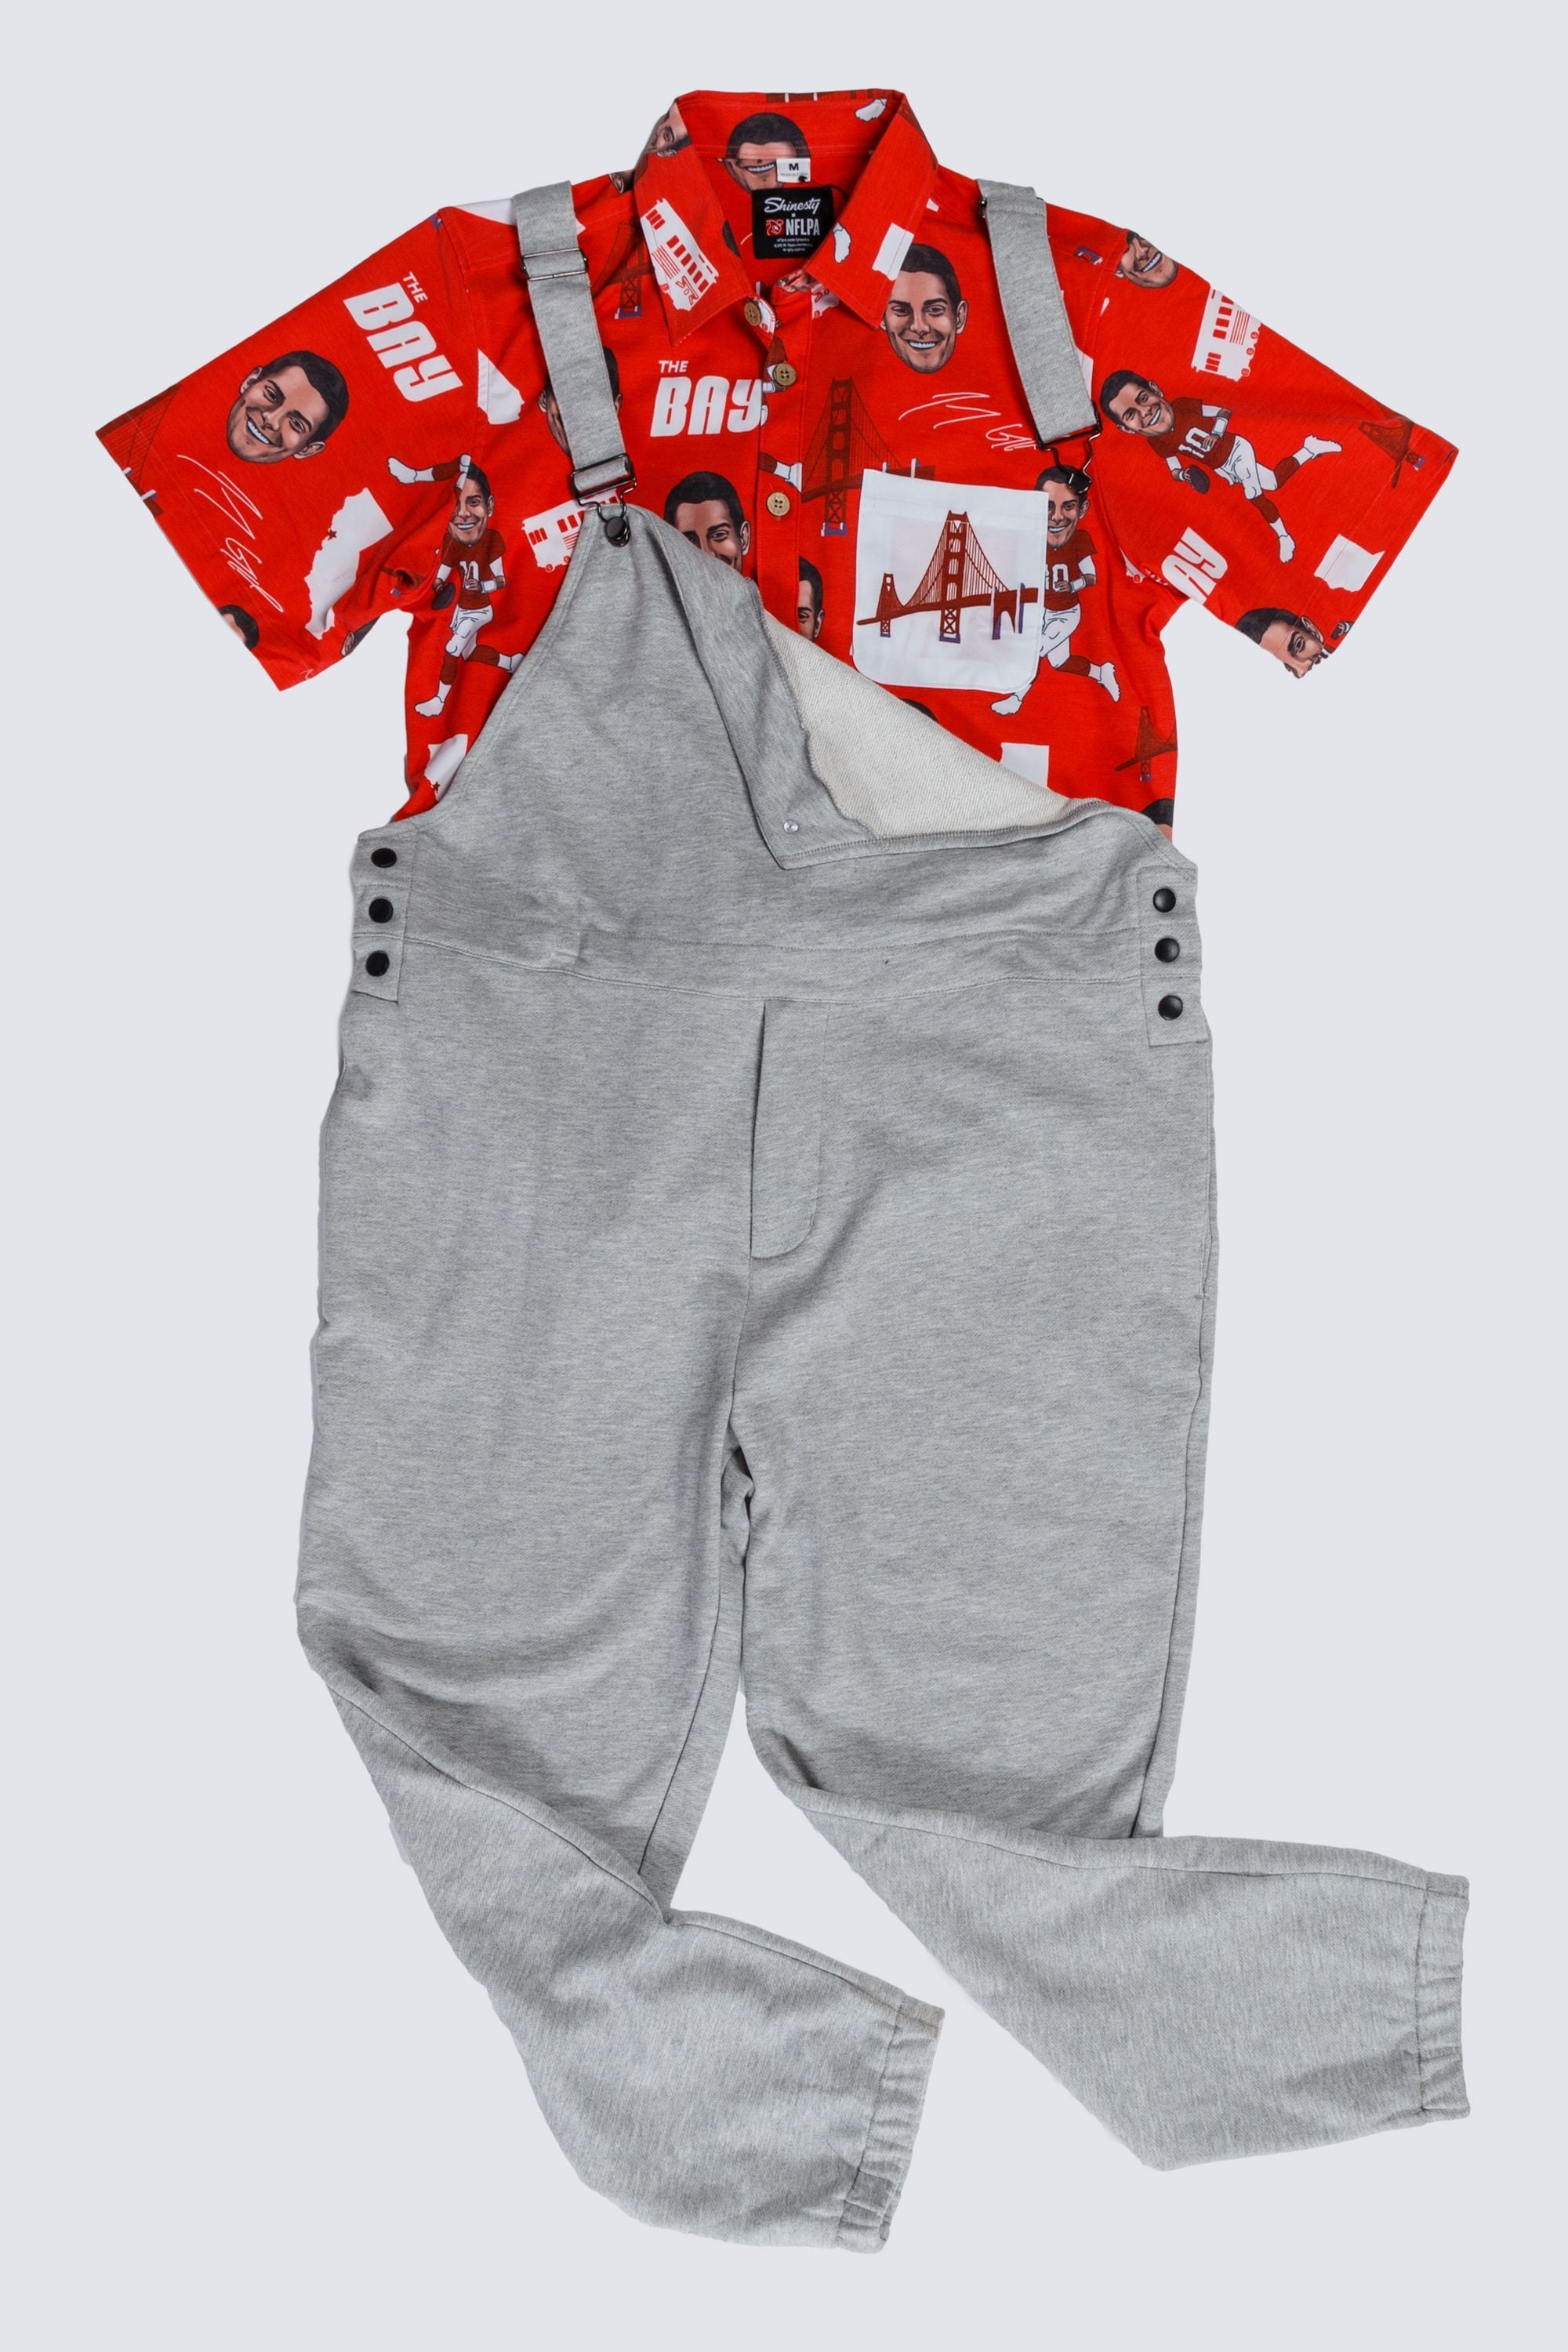 Jimmy Garoppolo Hawaiian paired with heathered grey pajamaralls